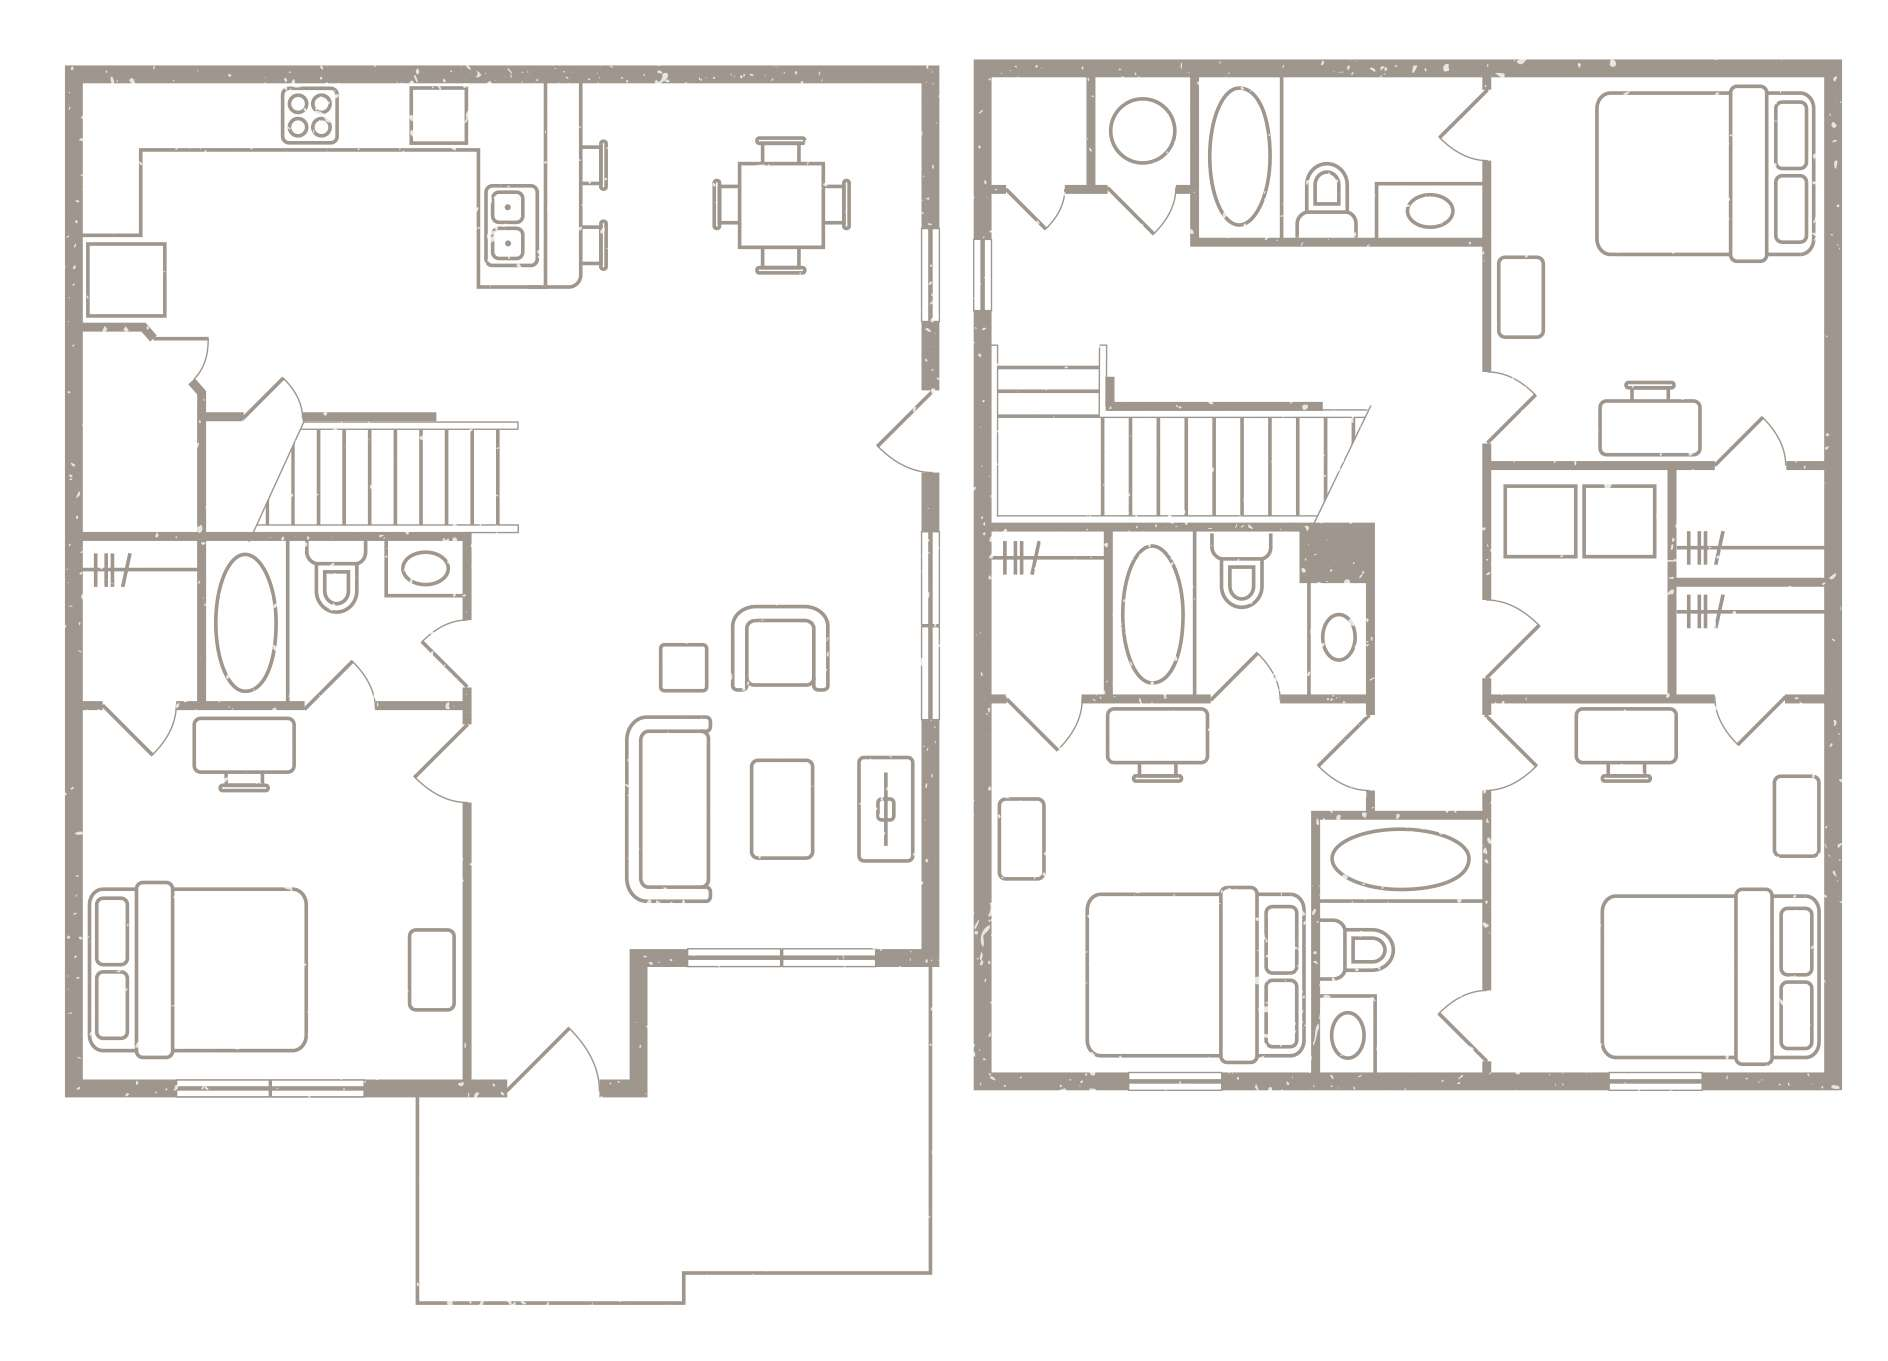 4 Bedroom & 4 Bath At Redpoint Tallahassee